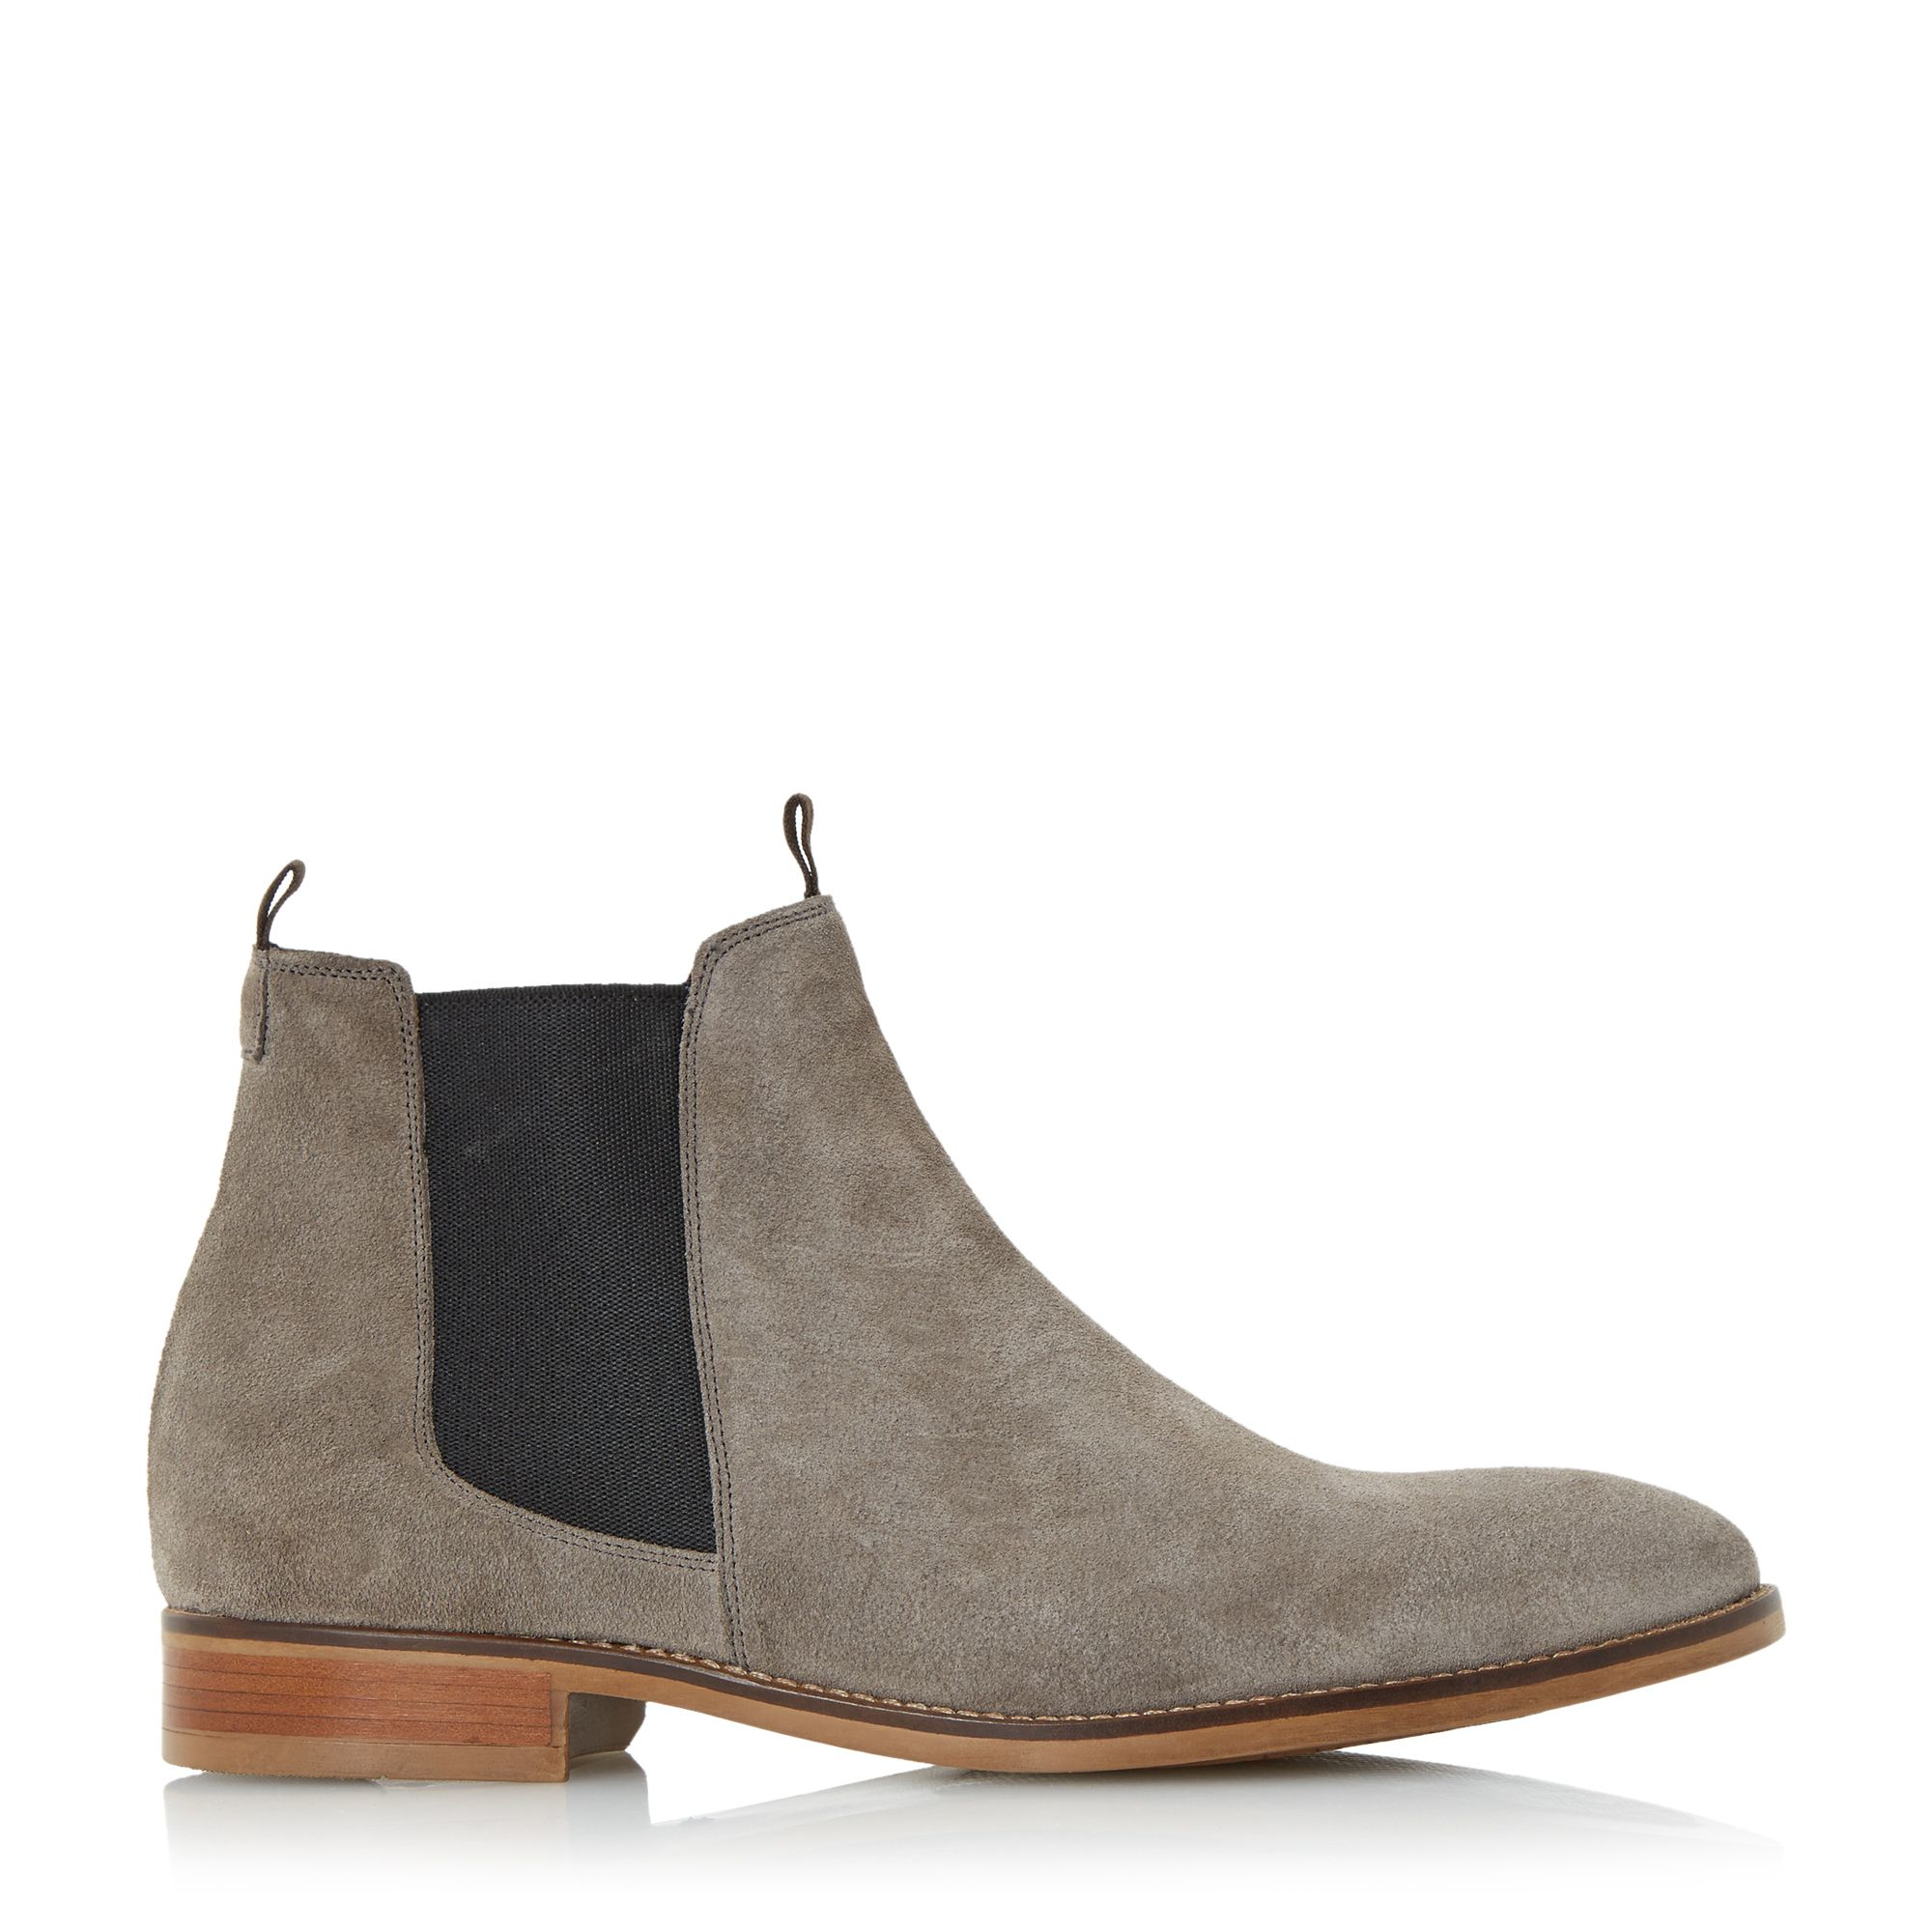 bertie cole double pull up tab chelsea boots in gray for men lyst. Black Bedroom Furniture Sets. Home Design Ideas